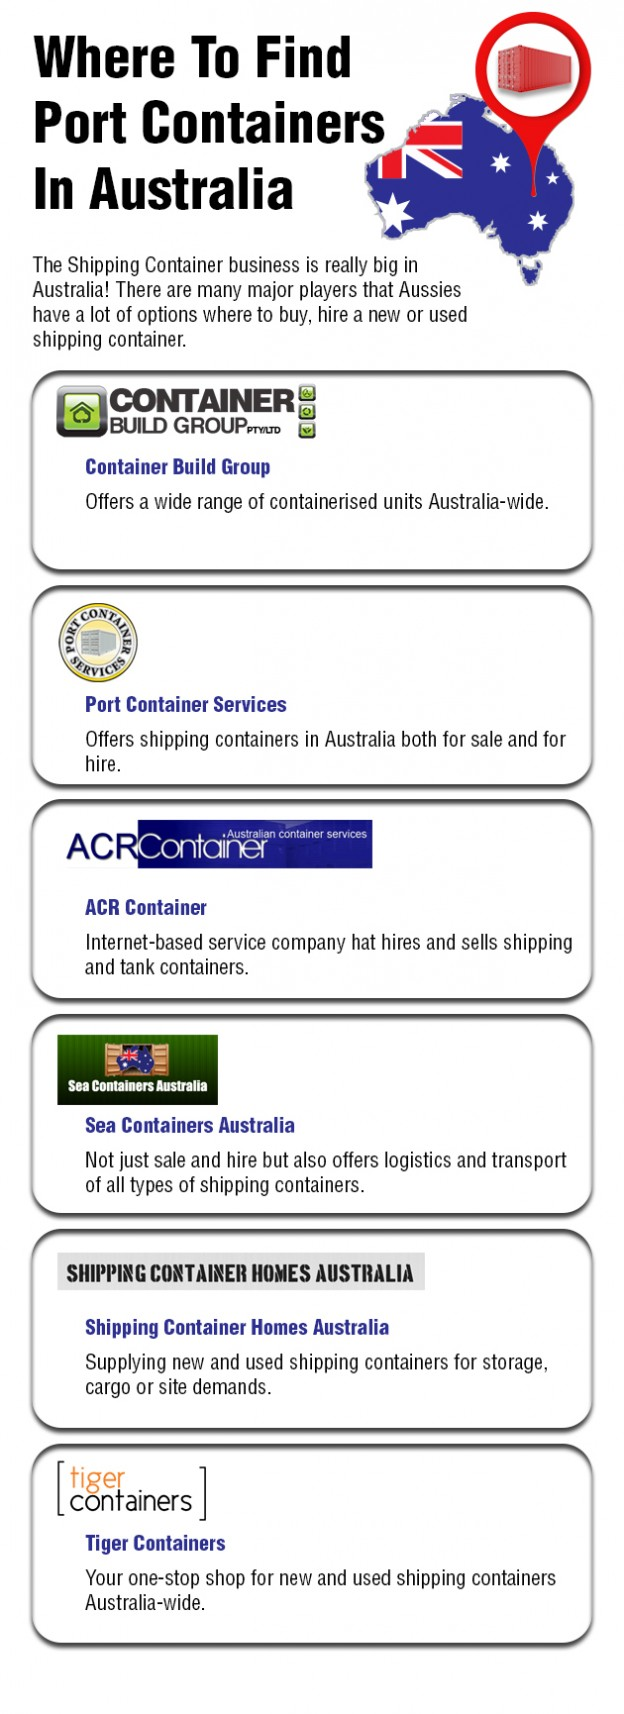 Where To Find Port Containers In Australia